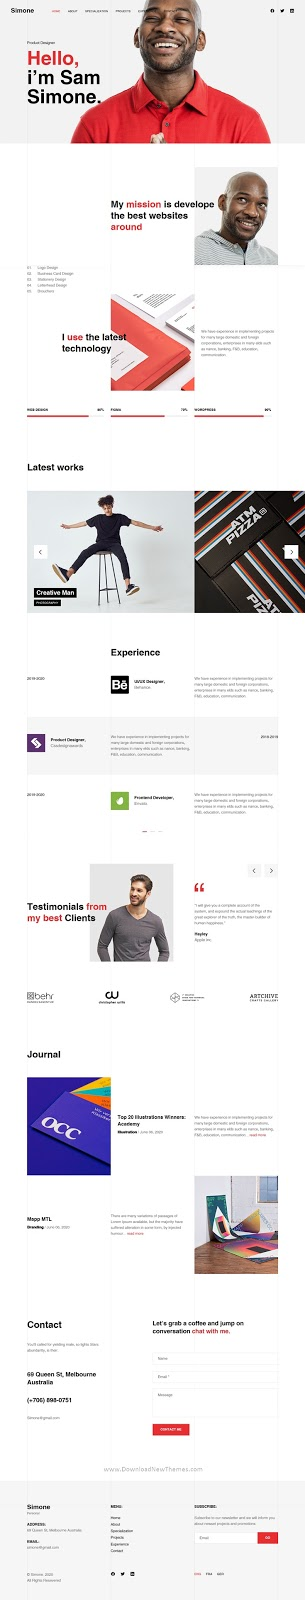 Download Onepage Personal CV/Resume HTML Template